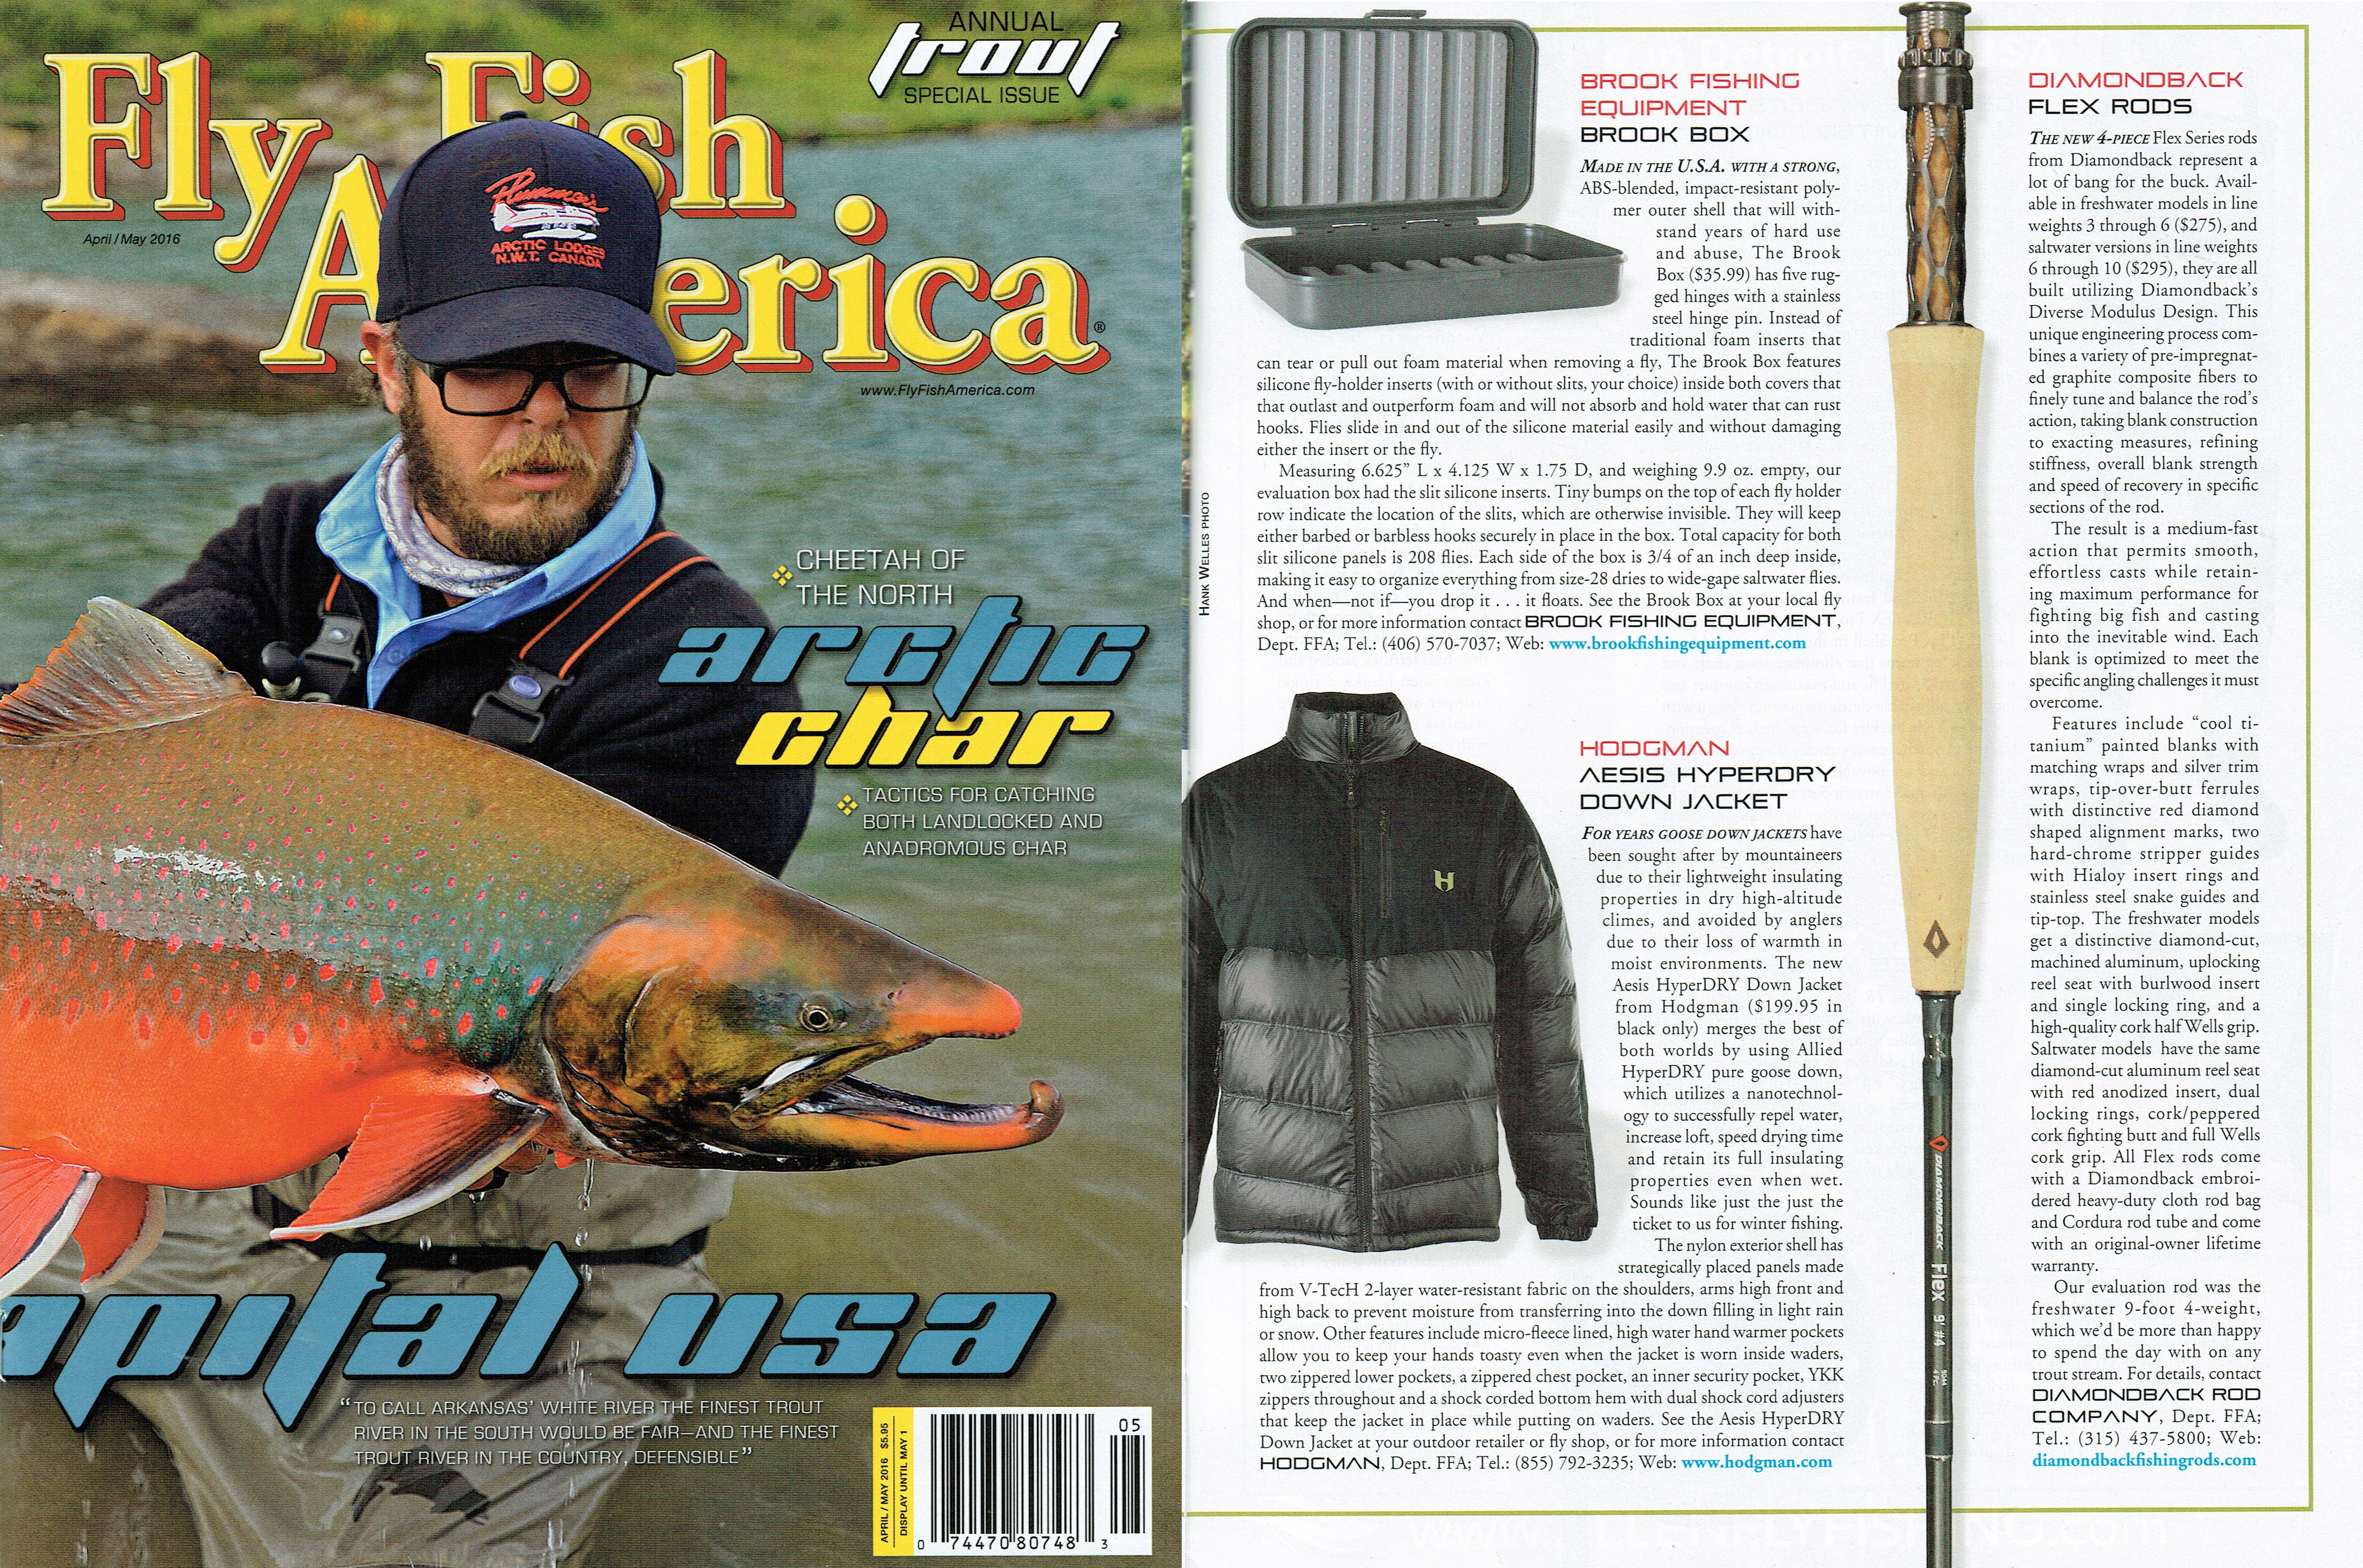 Press brook fishing equipment for Fly fish usa